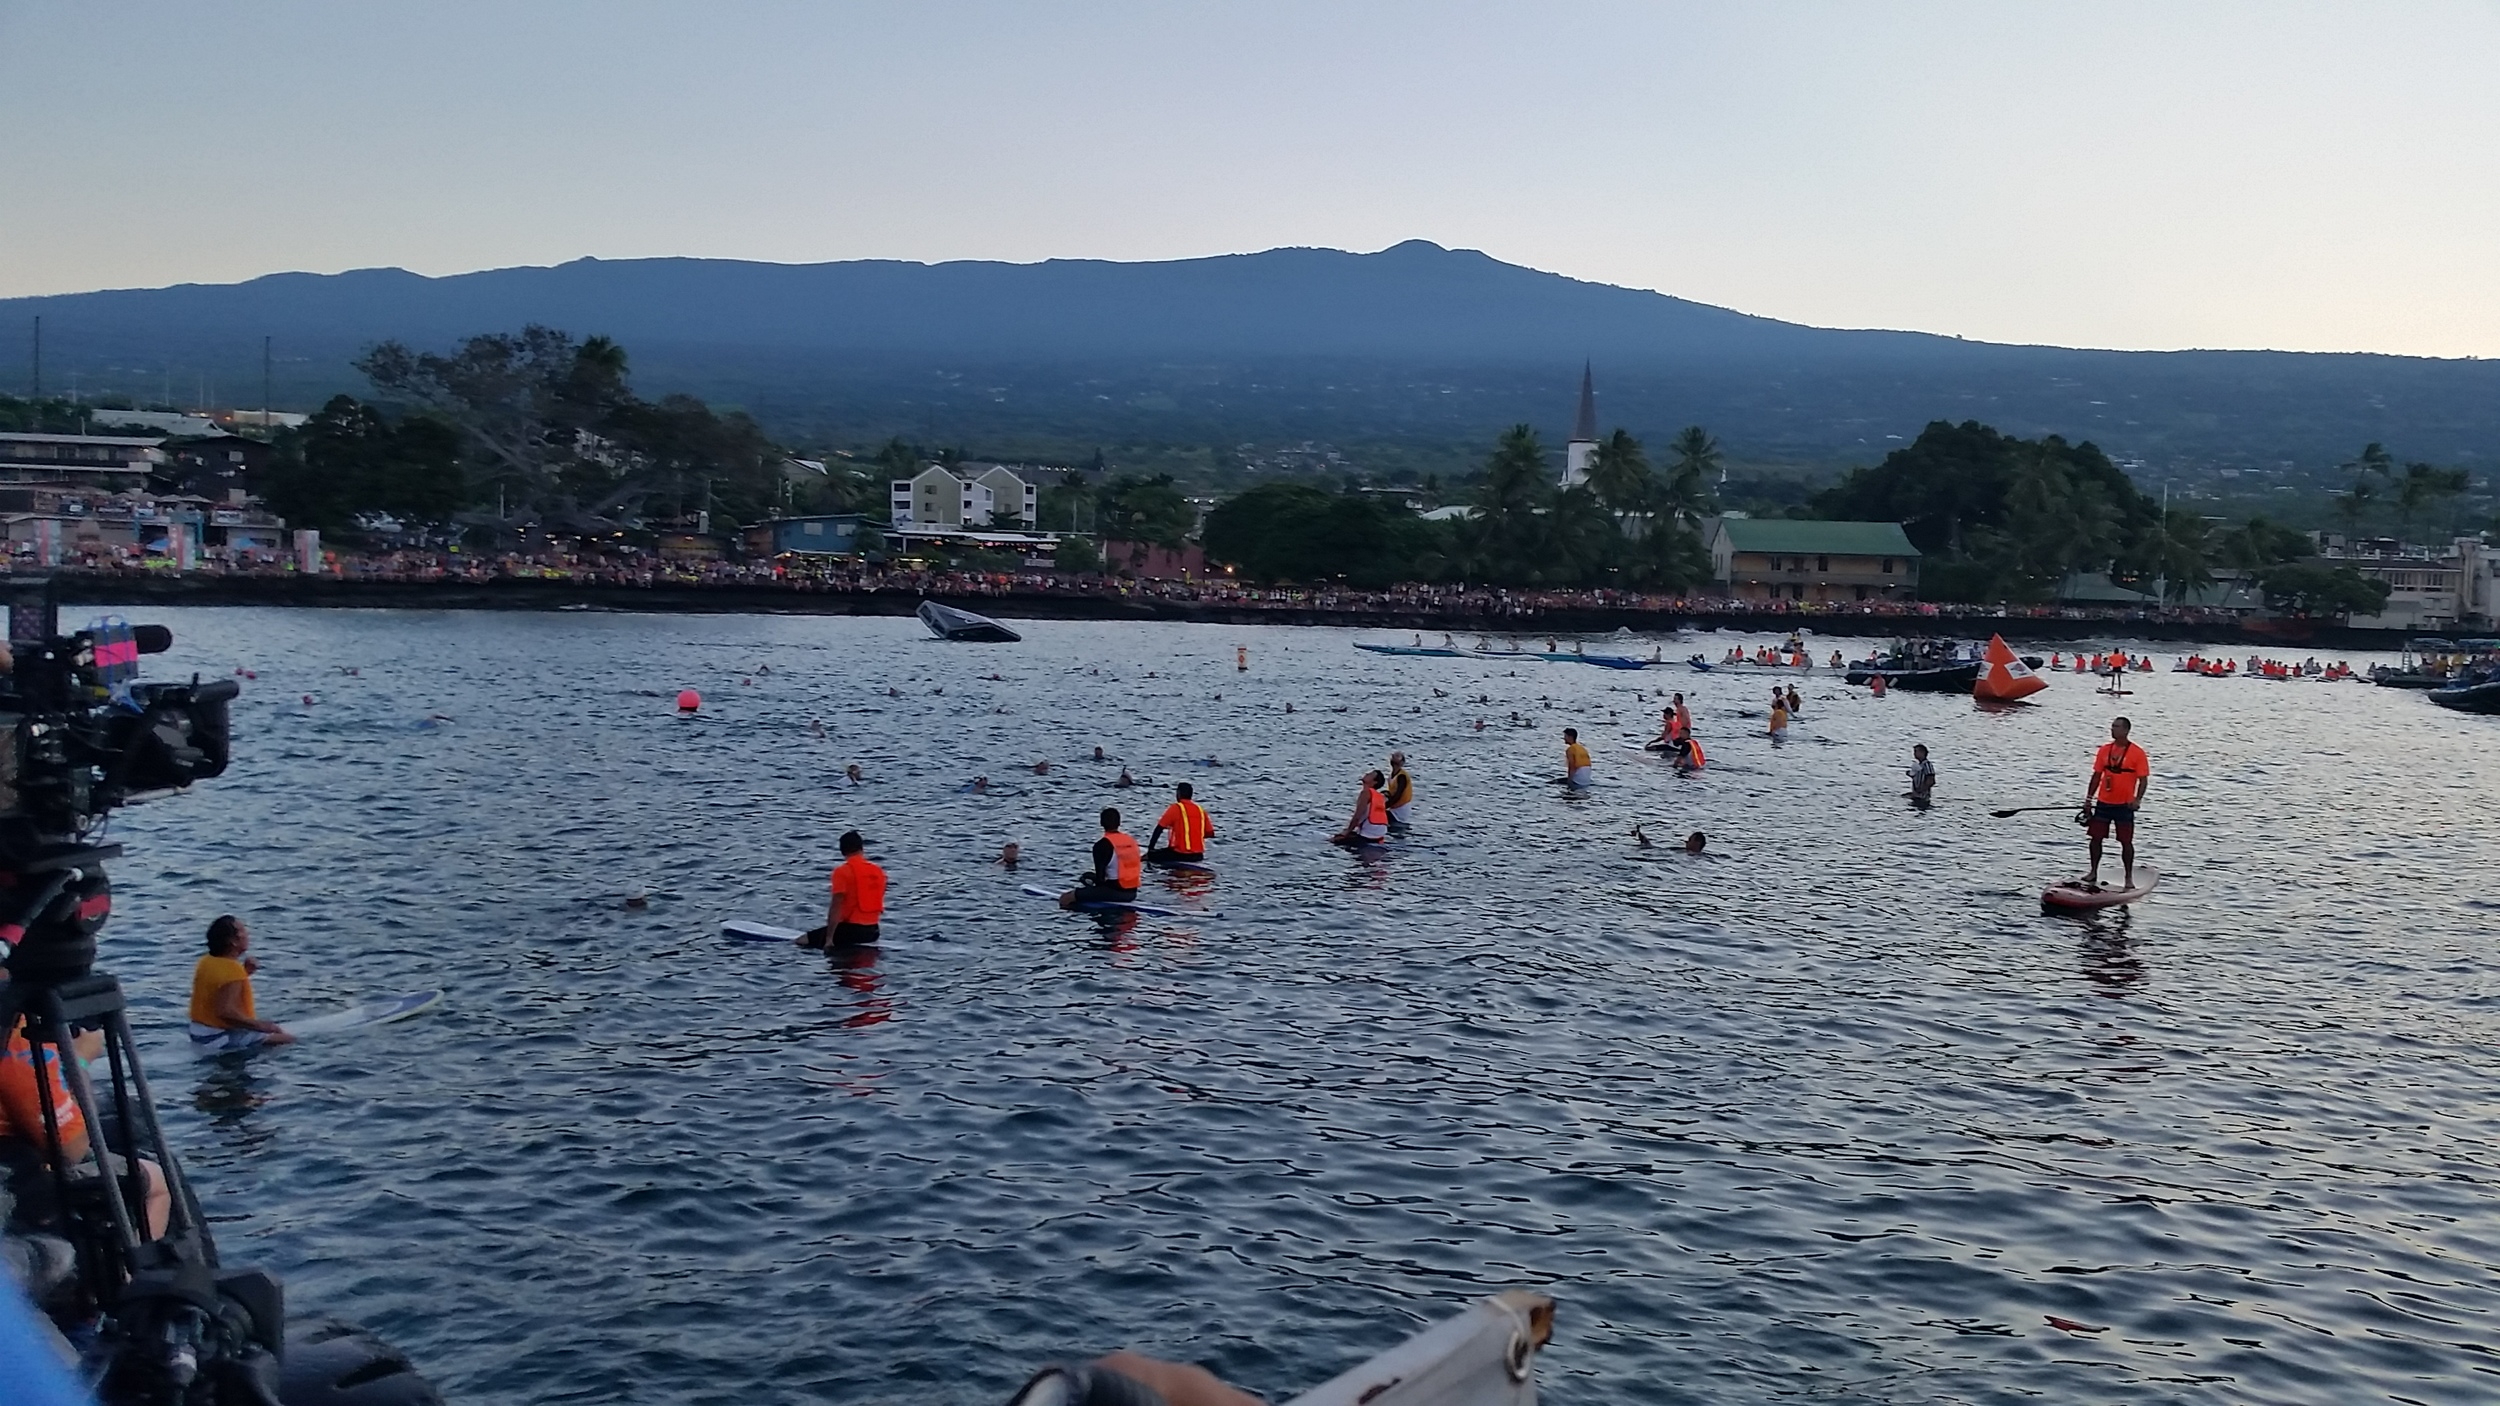 A photo Brooke snapped about 5-10 minutes before starting. All the paddle boarders do an amazing job of making everyone hold the starting line. It's unlike any other race in the world with an in-water start.